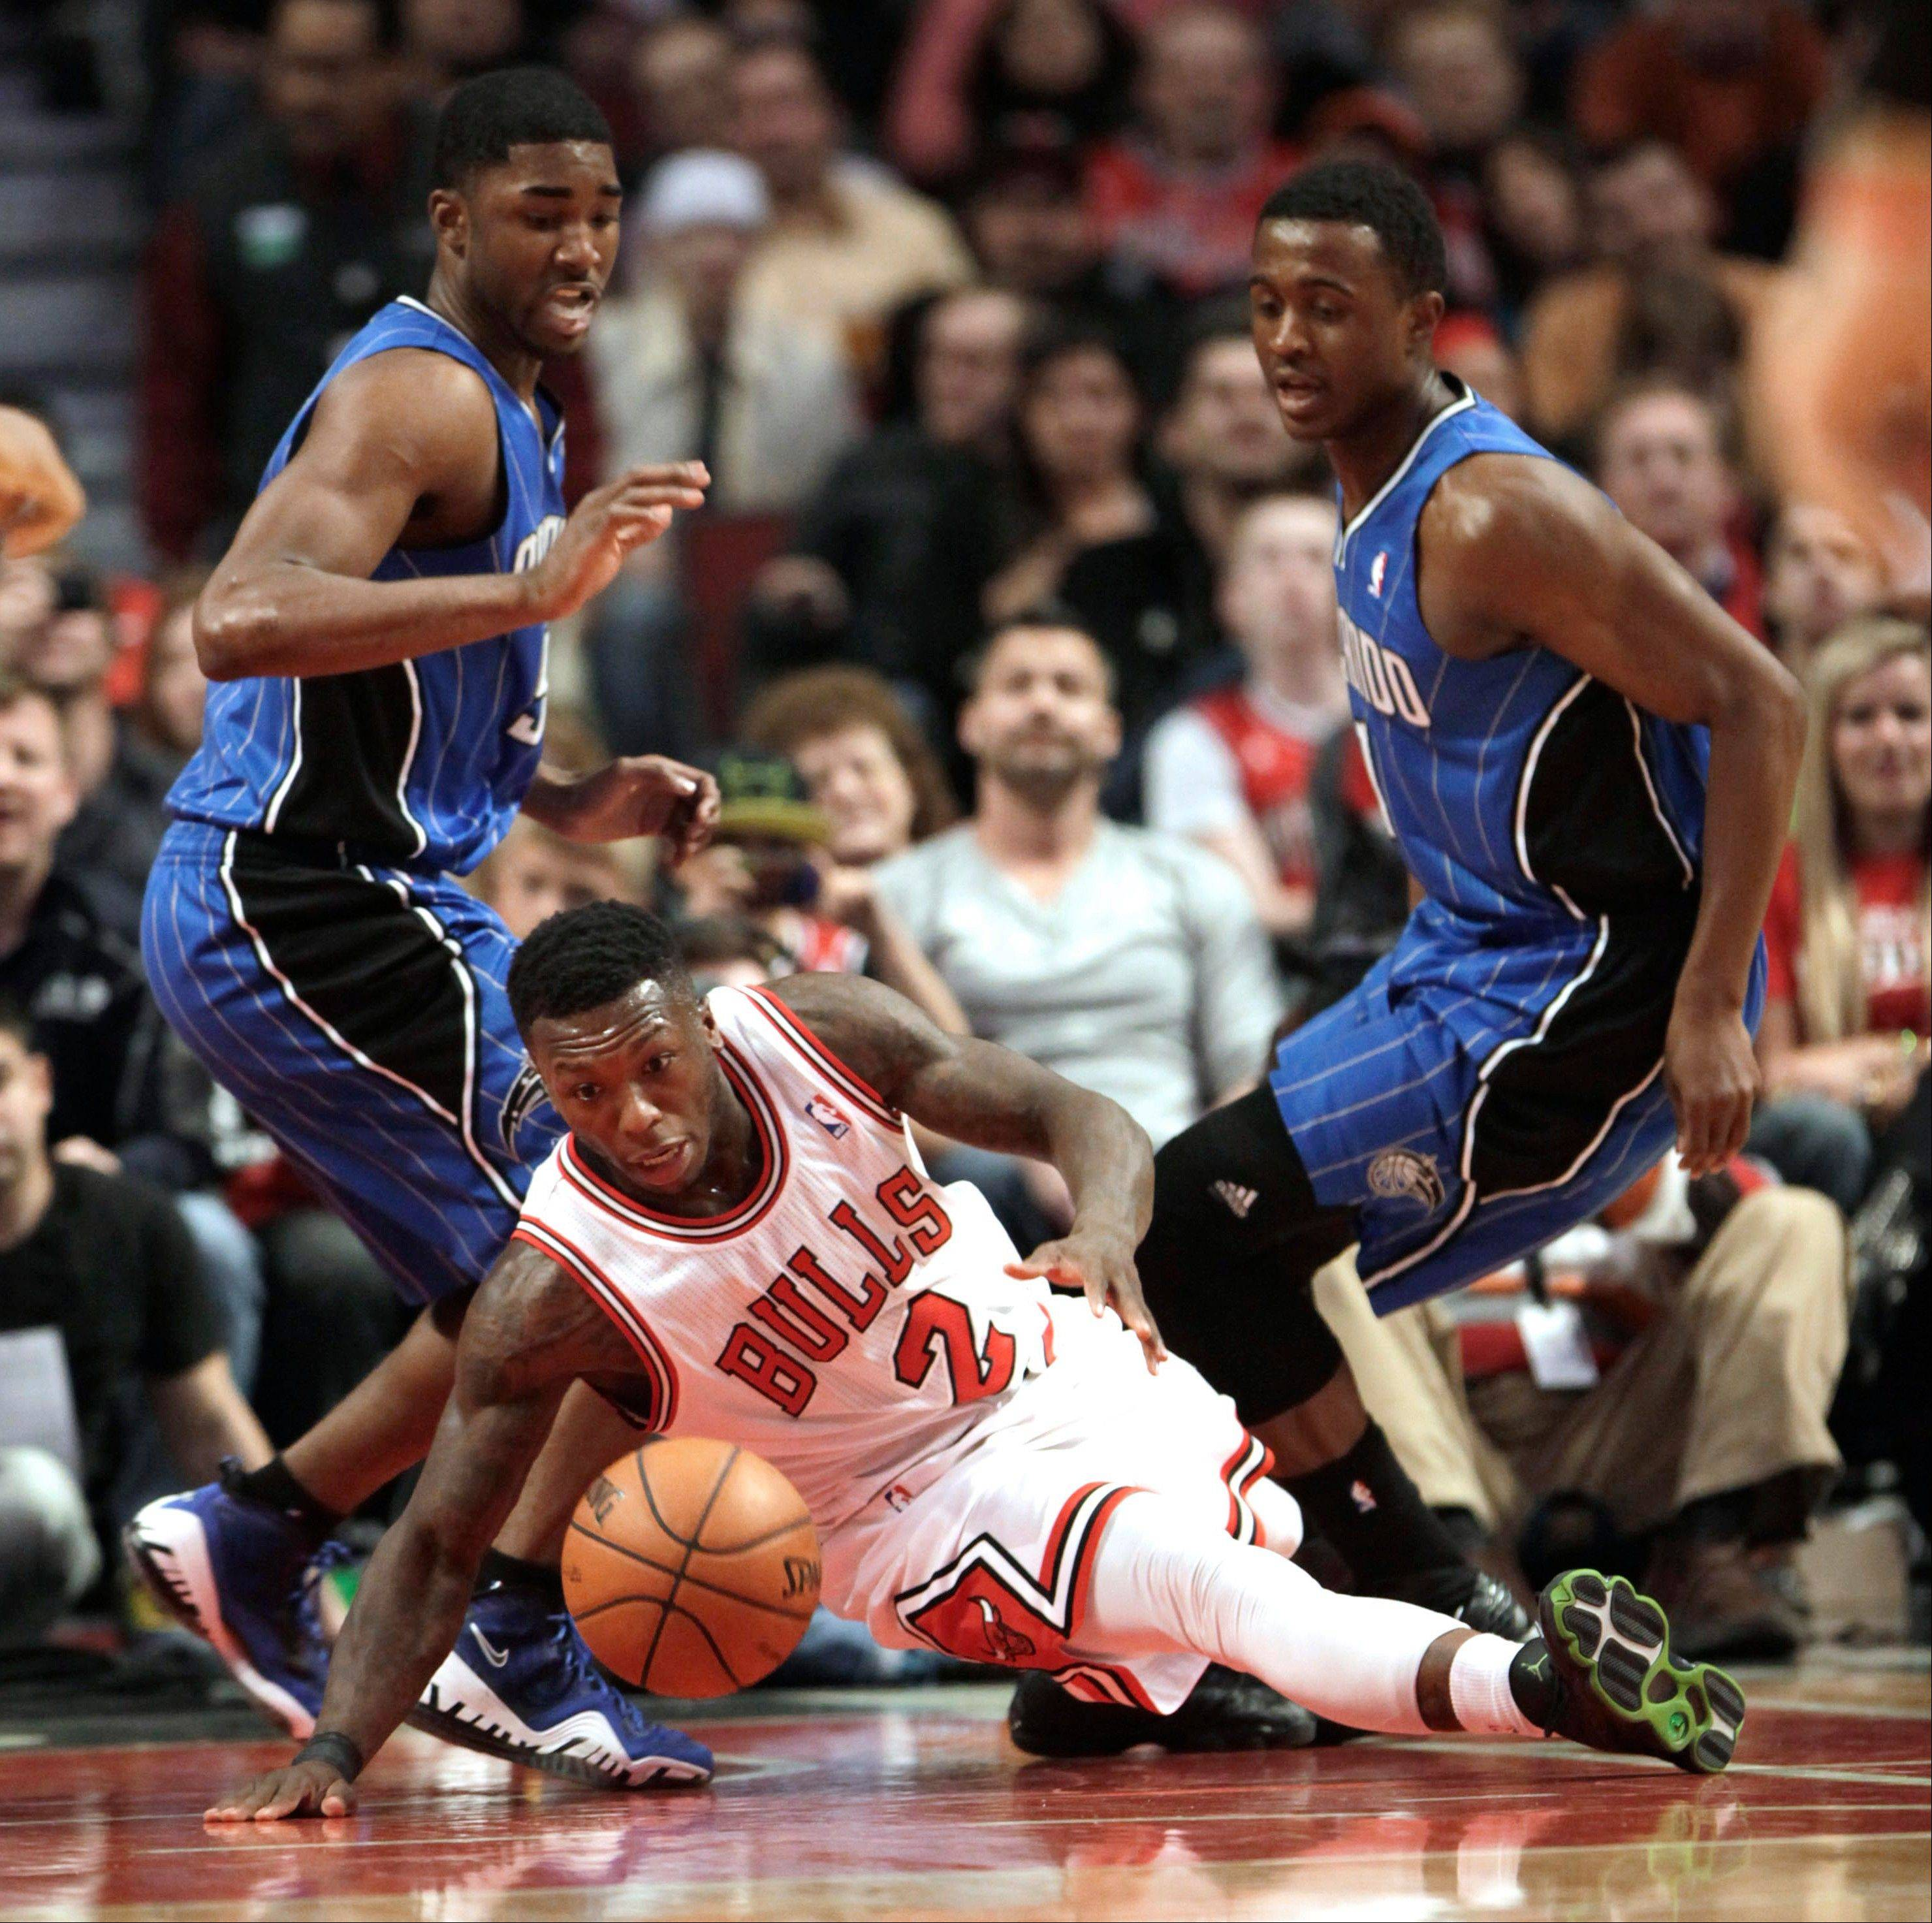 Due to injuries, Nate Robinson started Sunday's game against Detroit. Bulls coach Tom Thibodeau said Monday, however, he thought his second unit missed Robinson's energy and he may use him in a reserve role Tuesday against Toronto.